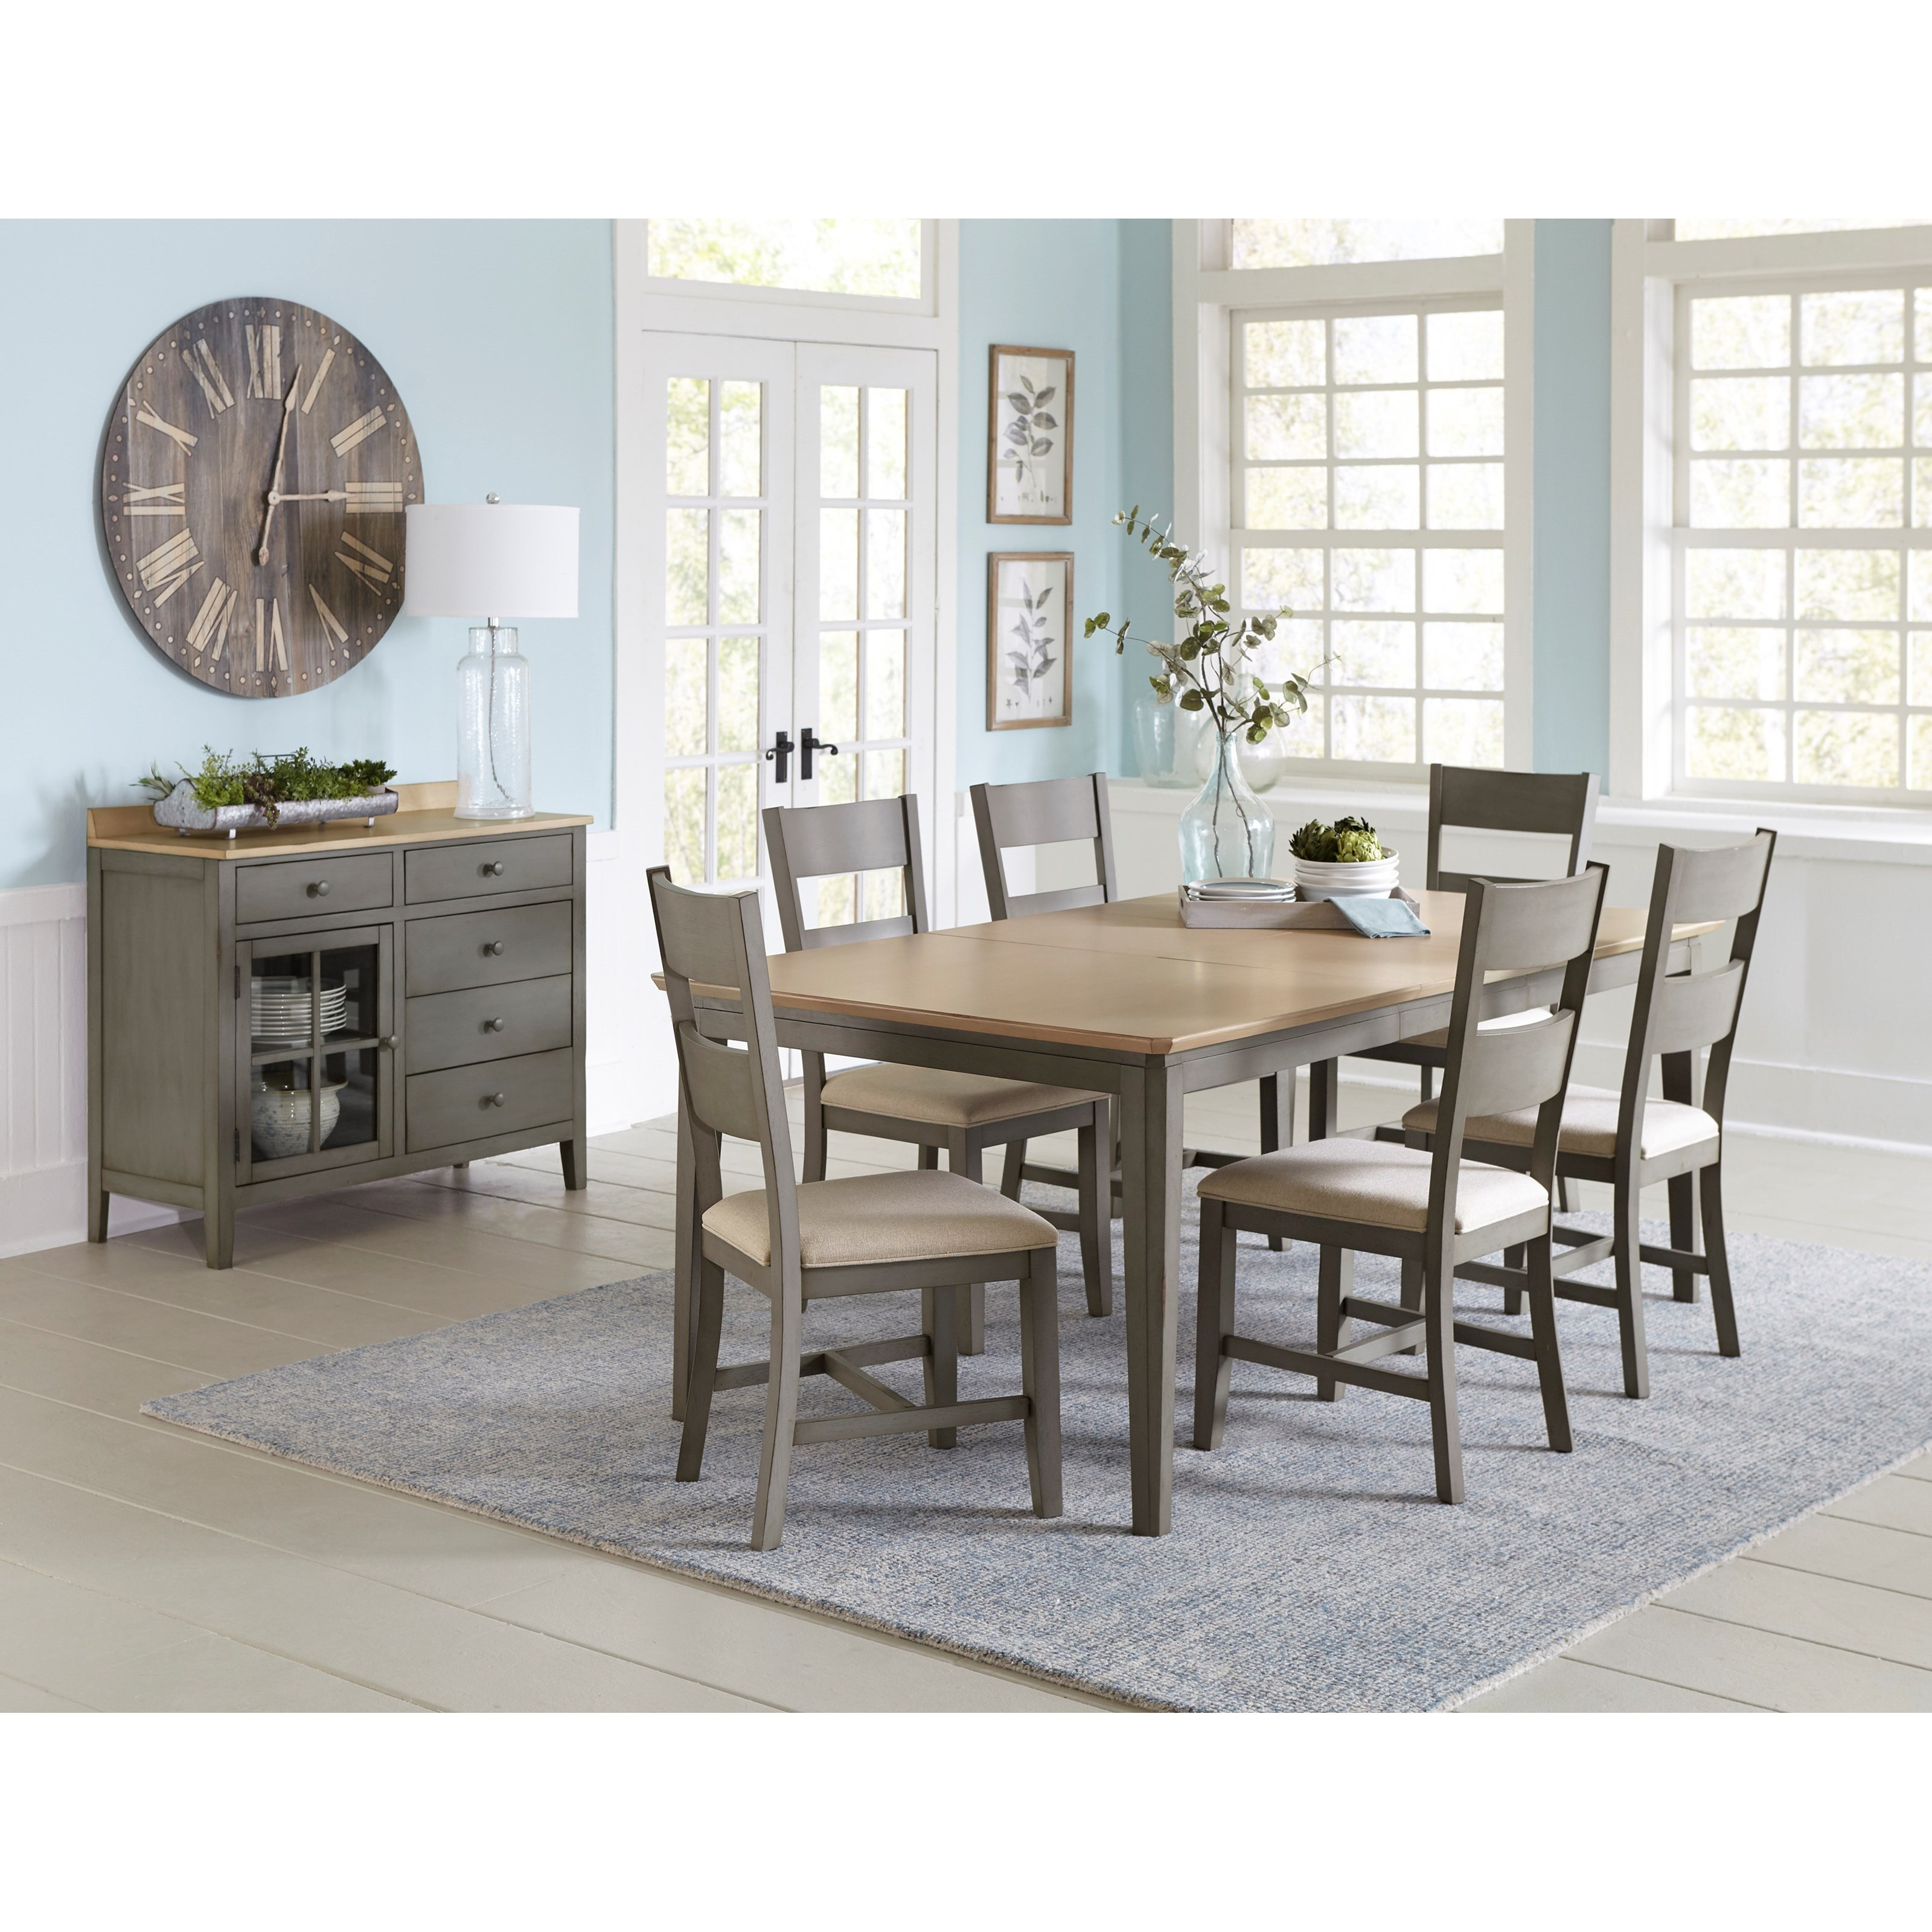 Toronto Dining Room Group by Progressive Furniture at Bullard Furniture